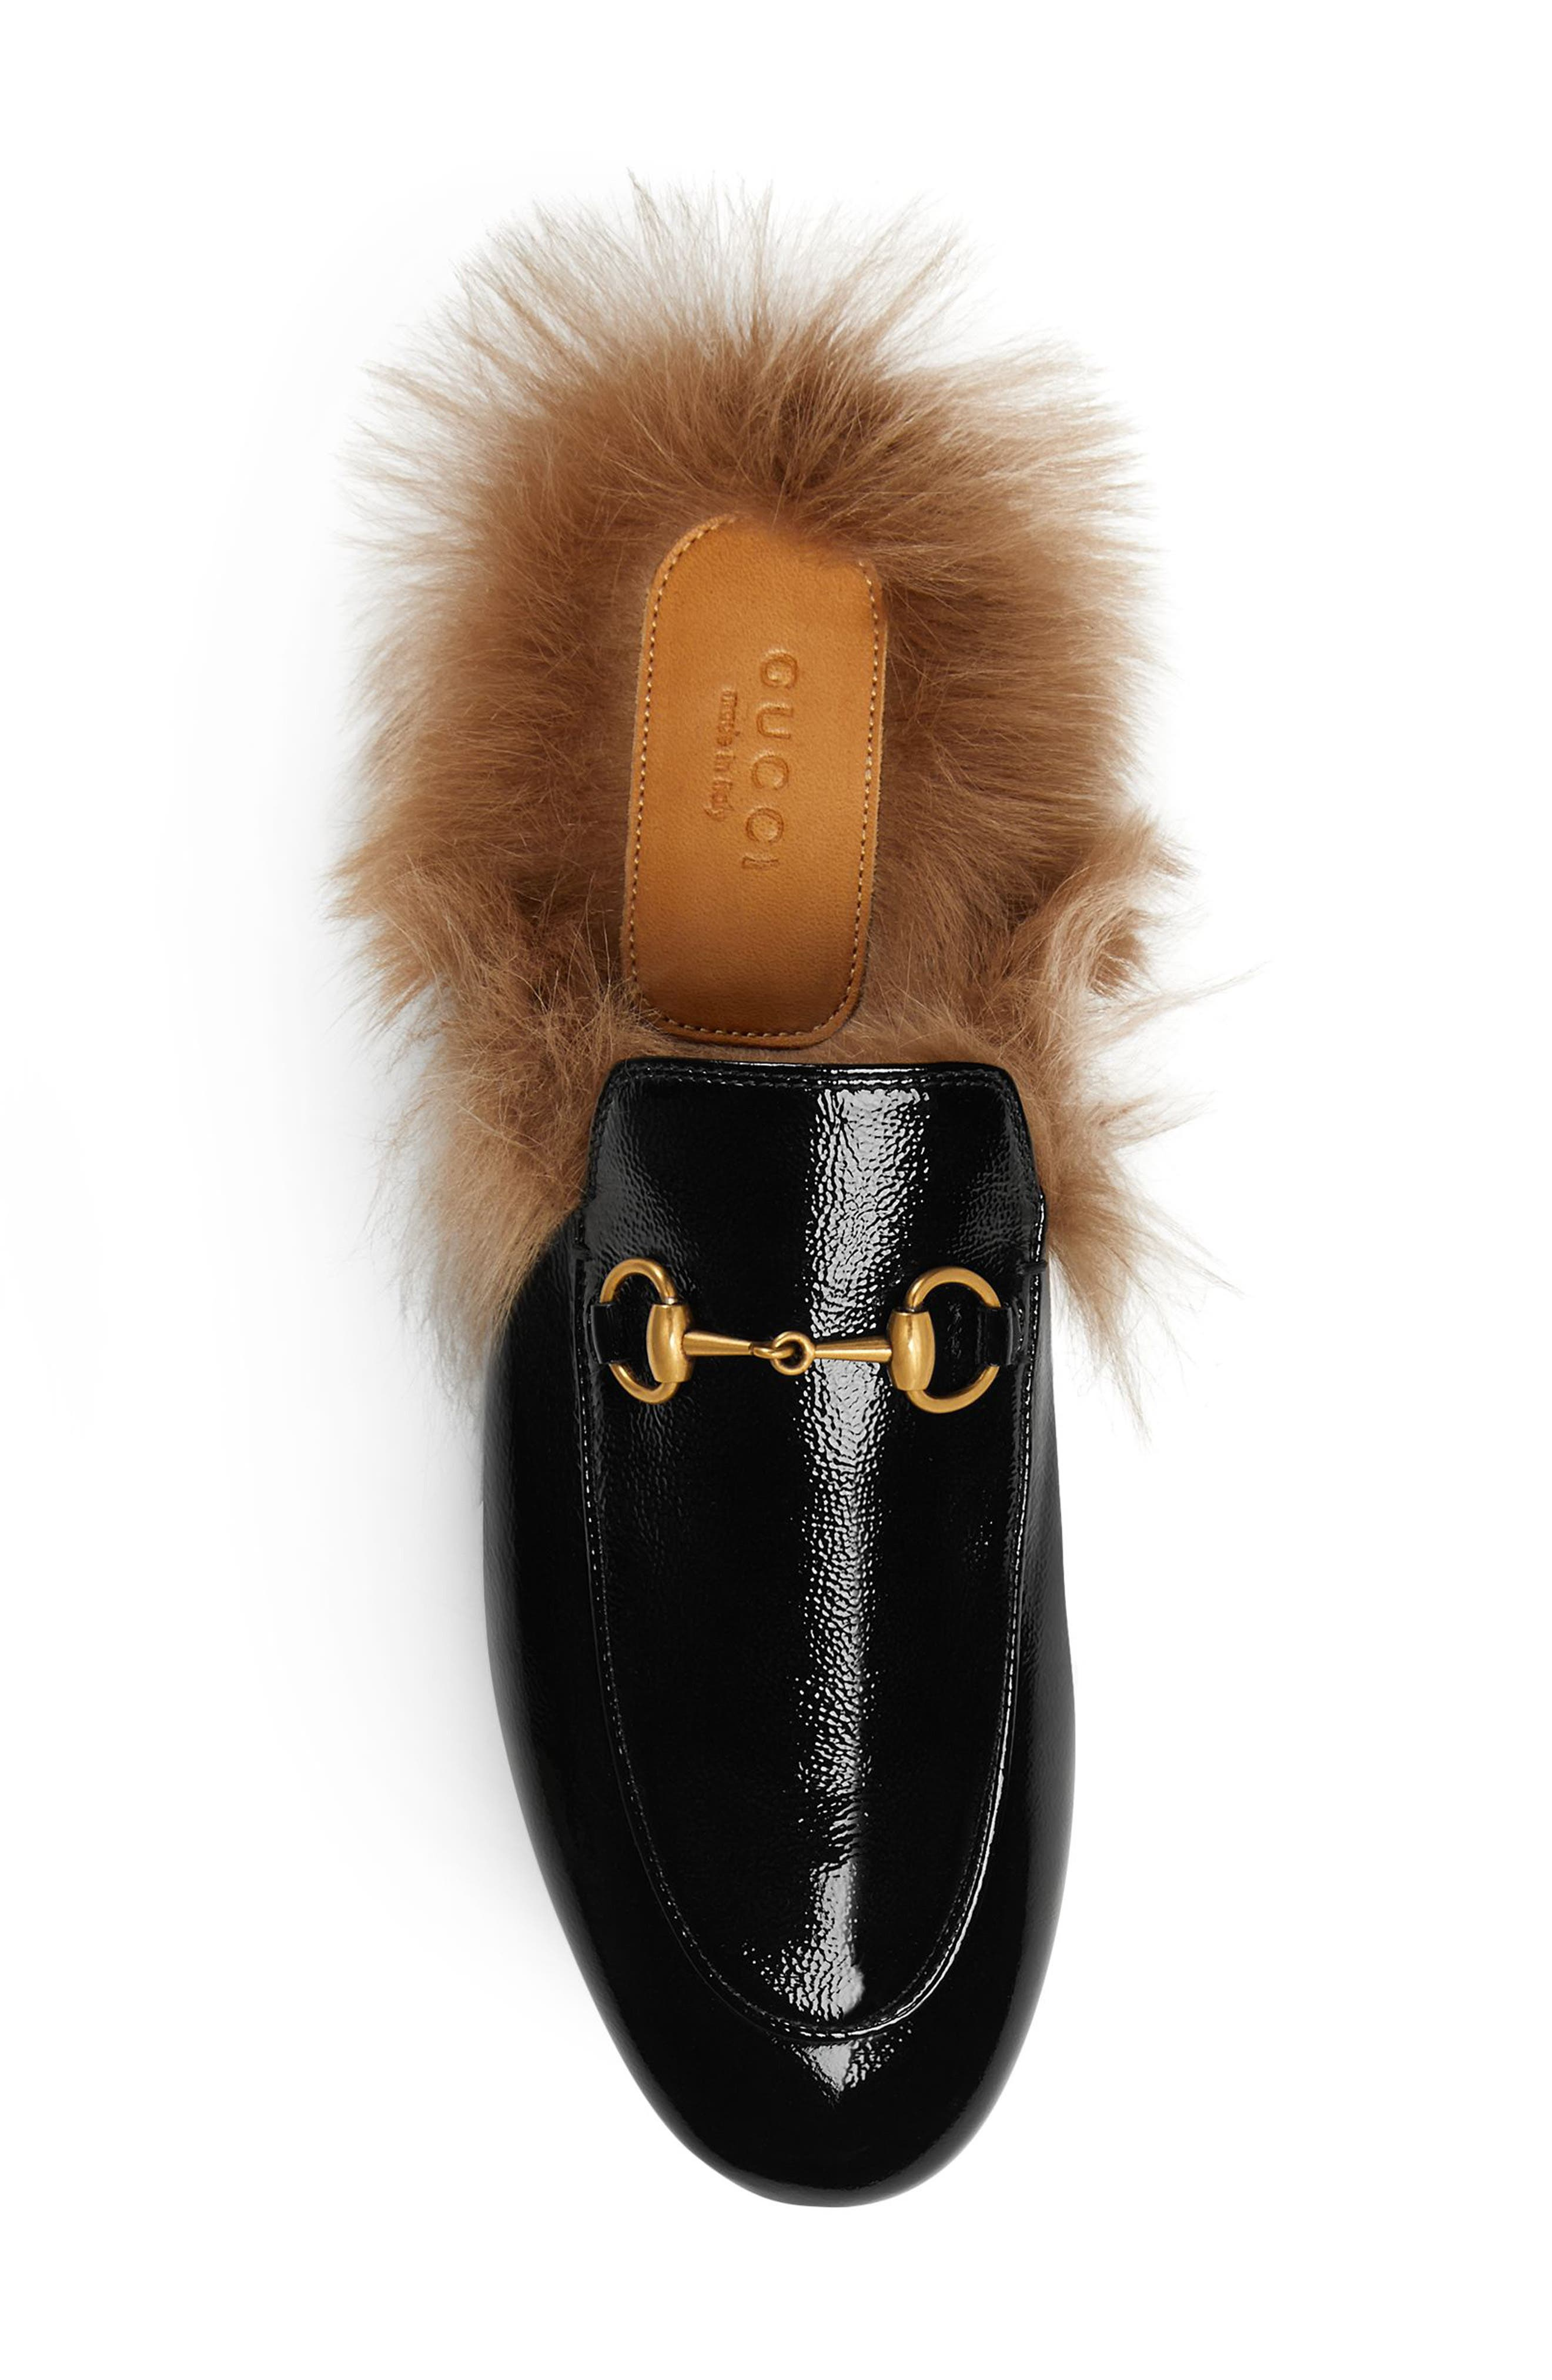 GUCCI, Princetown Genuine Shearling Loafer Mule, Alternate thumbnail 4, color, BLACK PATENT